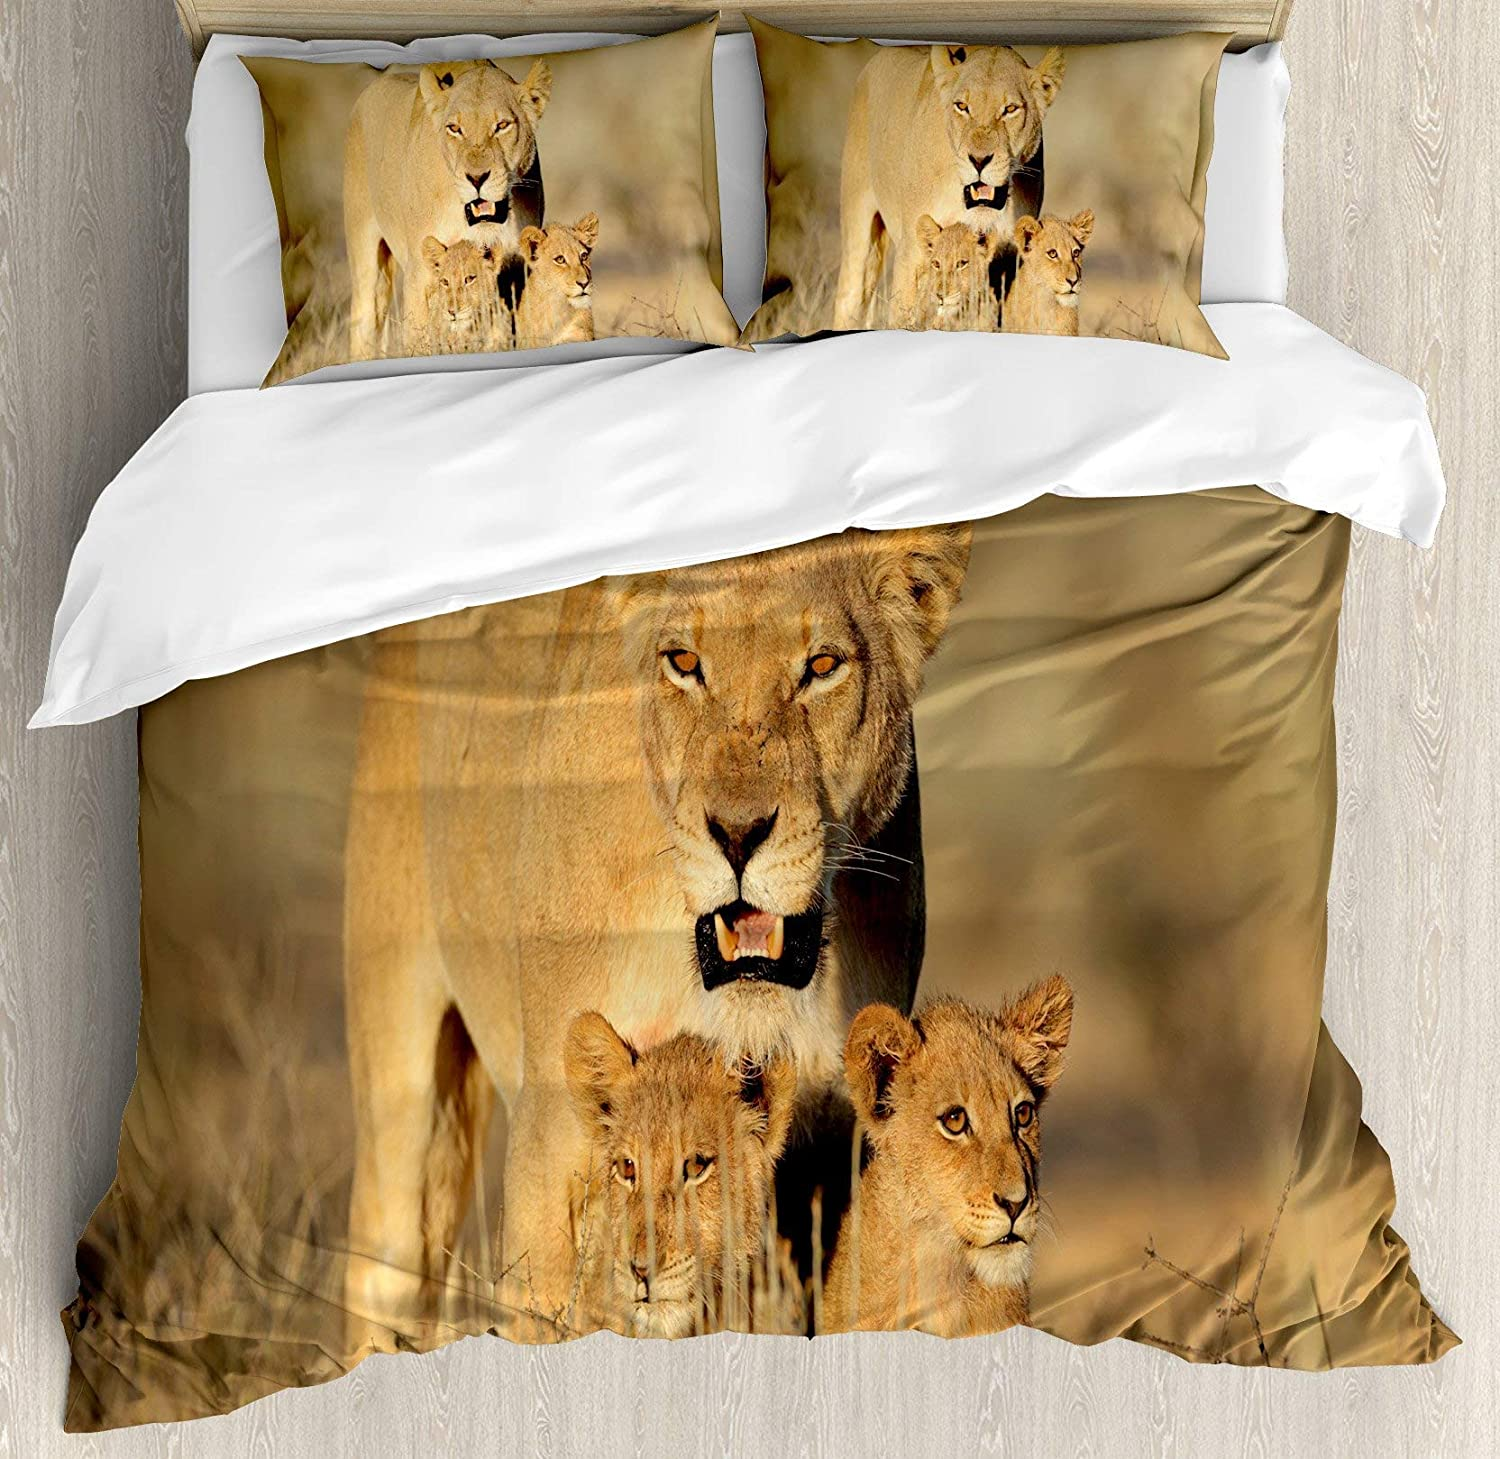 Multi 2 Twin BULING Safari 4pc Bedding Set Twin Size, Mom Lioness and Young Lion Kings in South African Nature Big Cats at Wilderness Safari Floral Lightweight Microfiber Duvet Cover Set, Cream